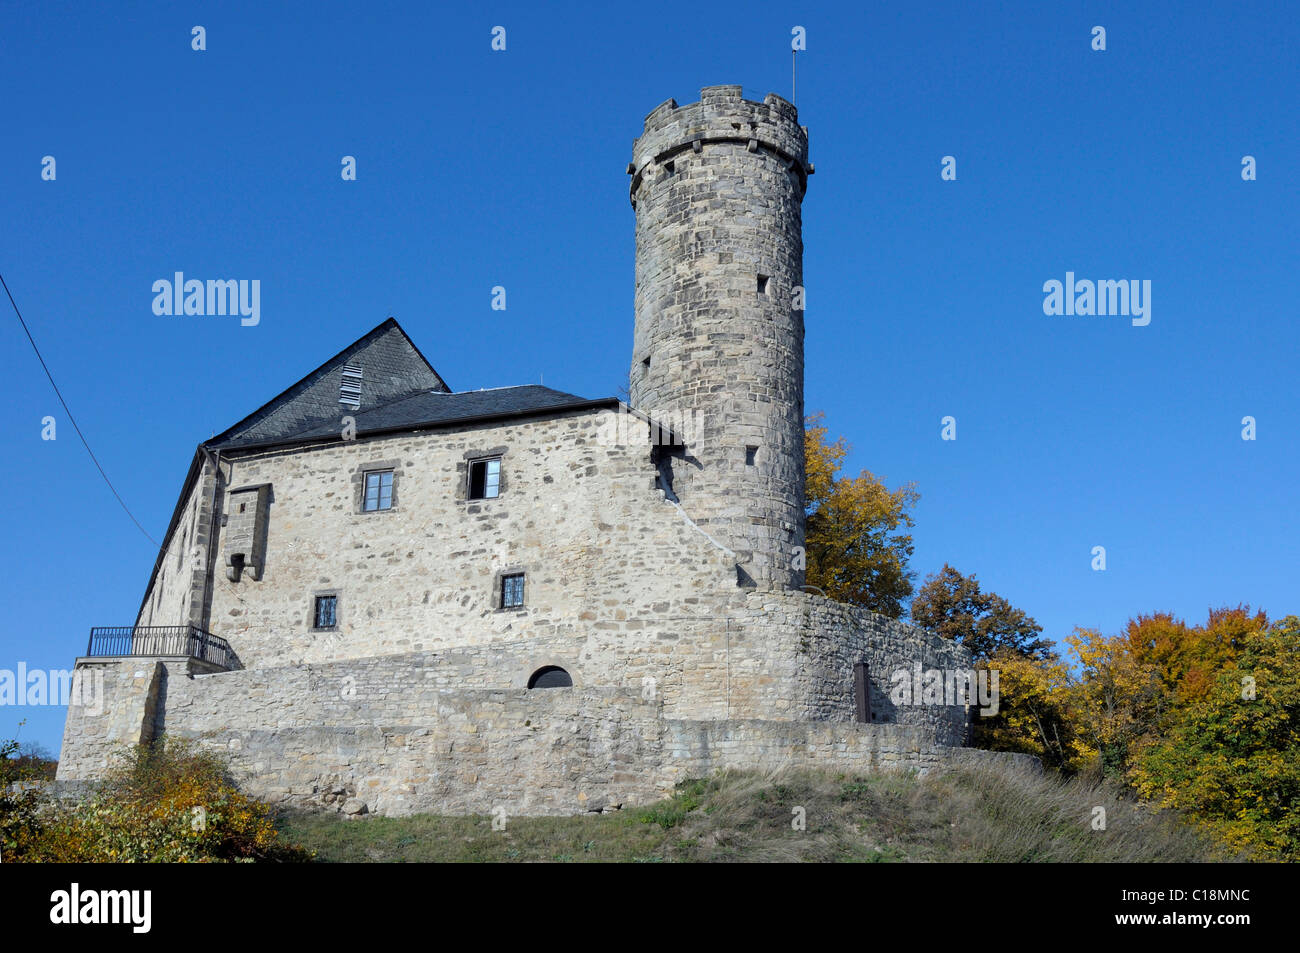 Burg greifenstein castle bad blankenburg thuringia for Burg greifenstein bad blankenburg